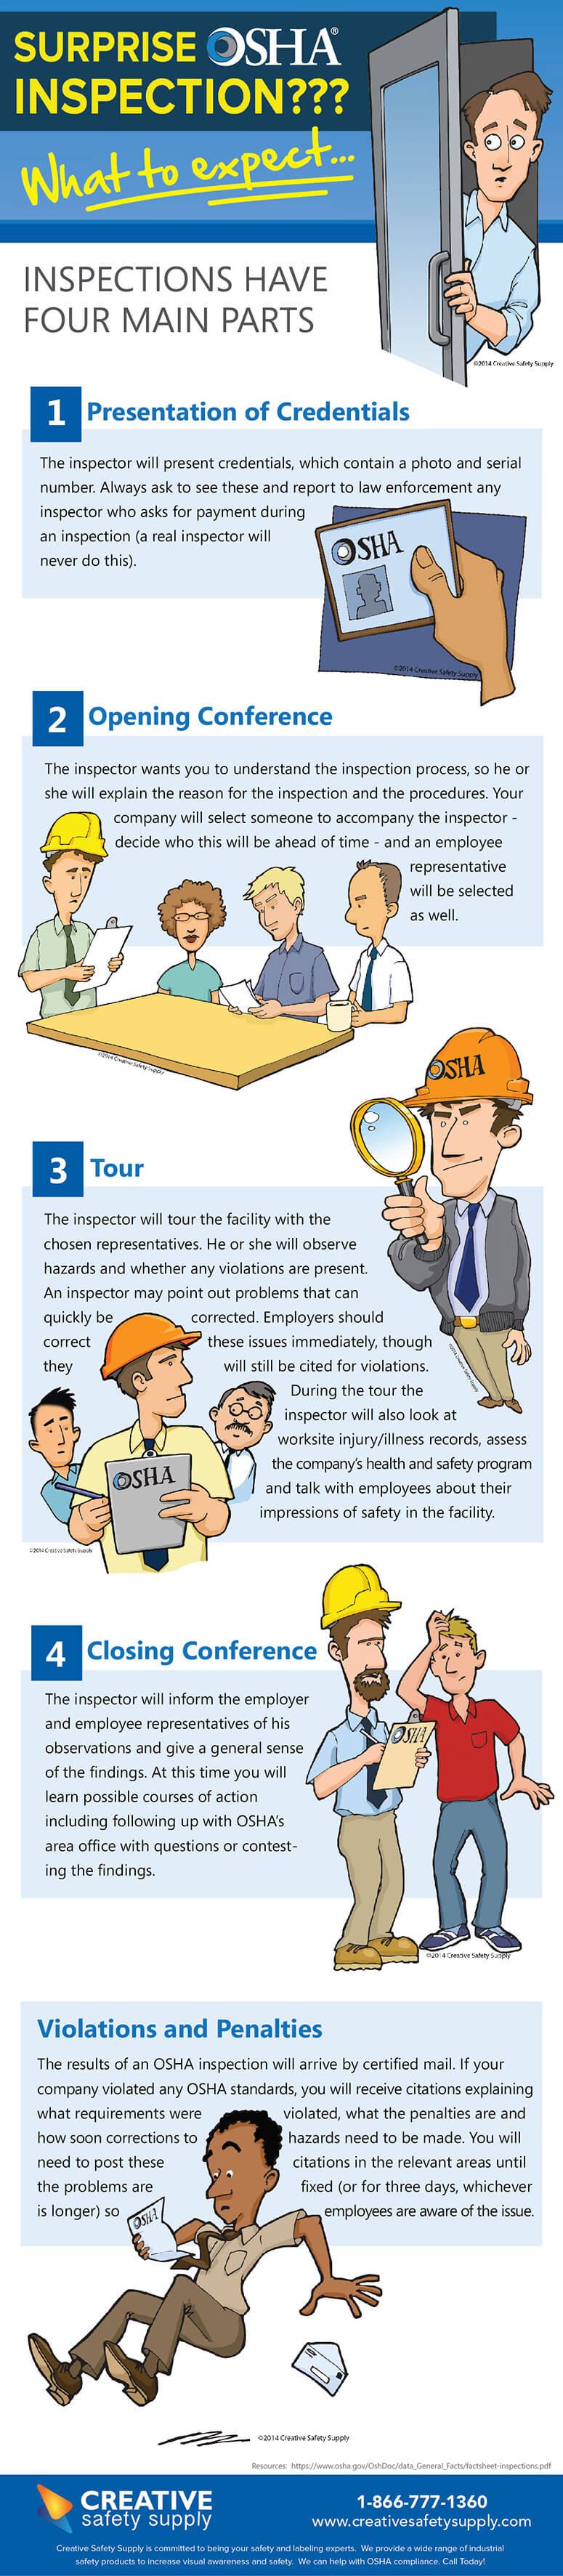 osha-inspection-infographic-plaza